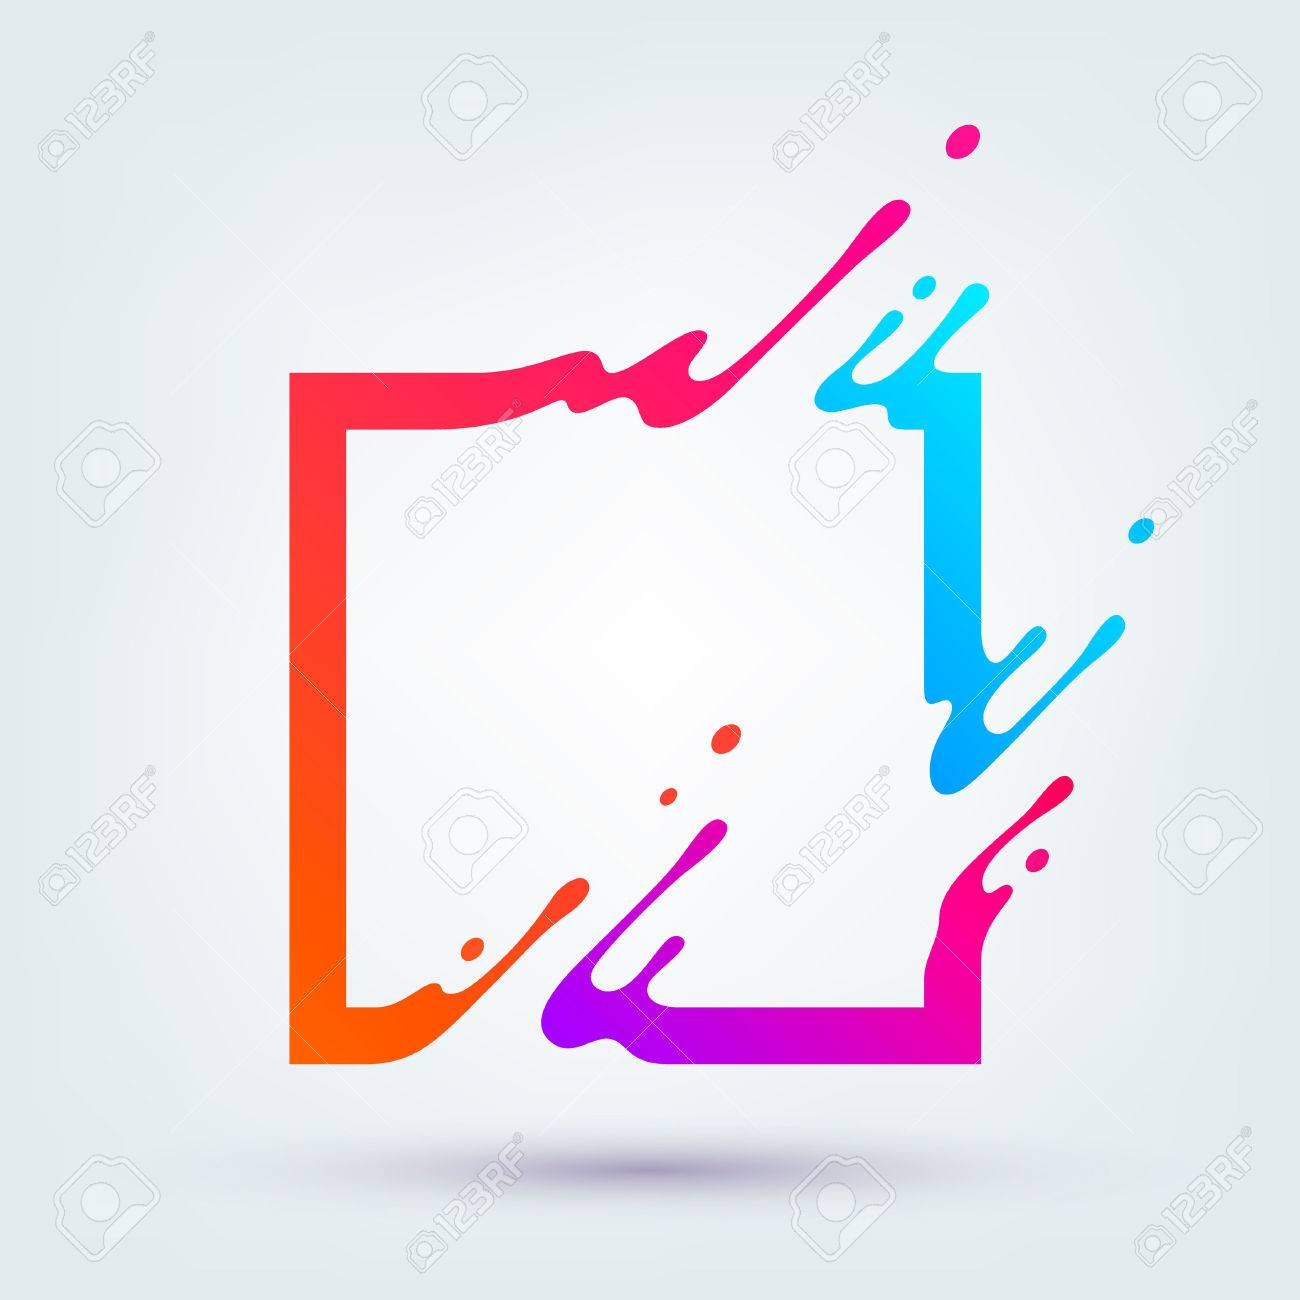 illustration with abstract colorful square. Abstract splash, liquid shape. Background for poster, cover,placard. - 61997567